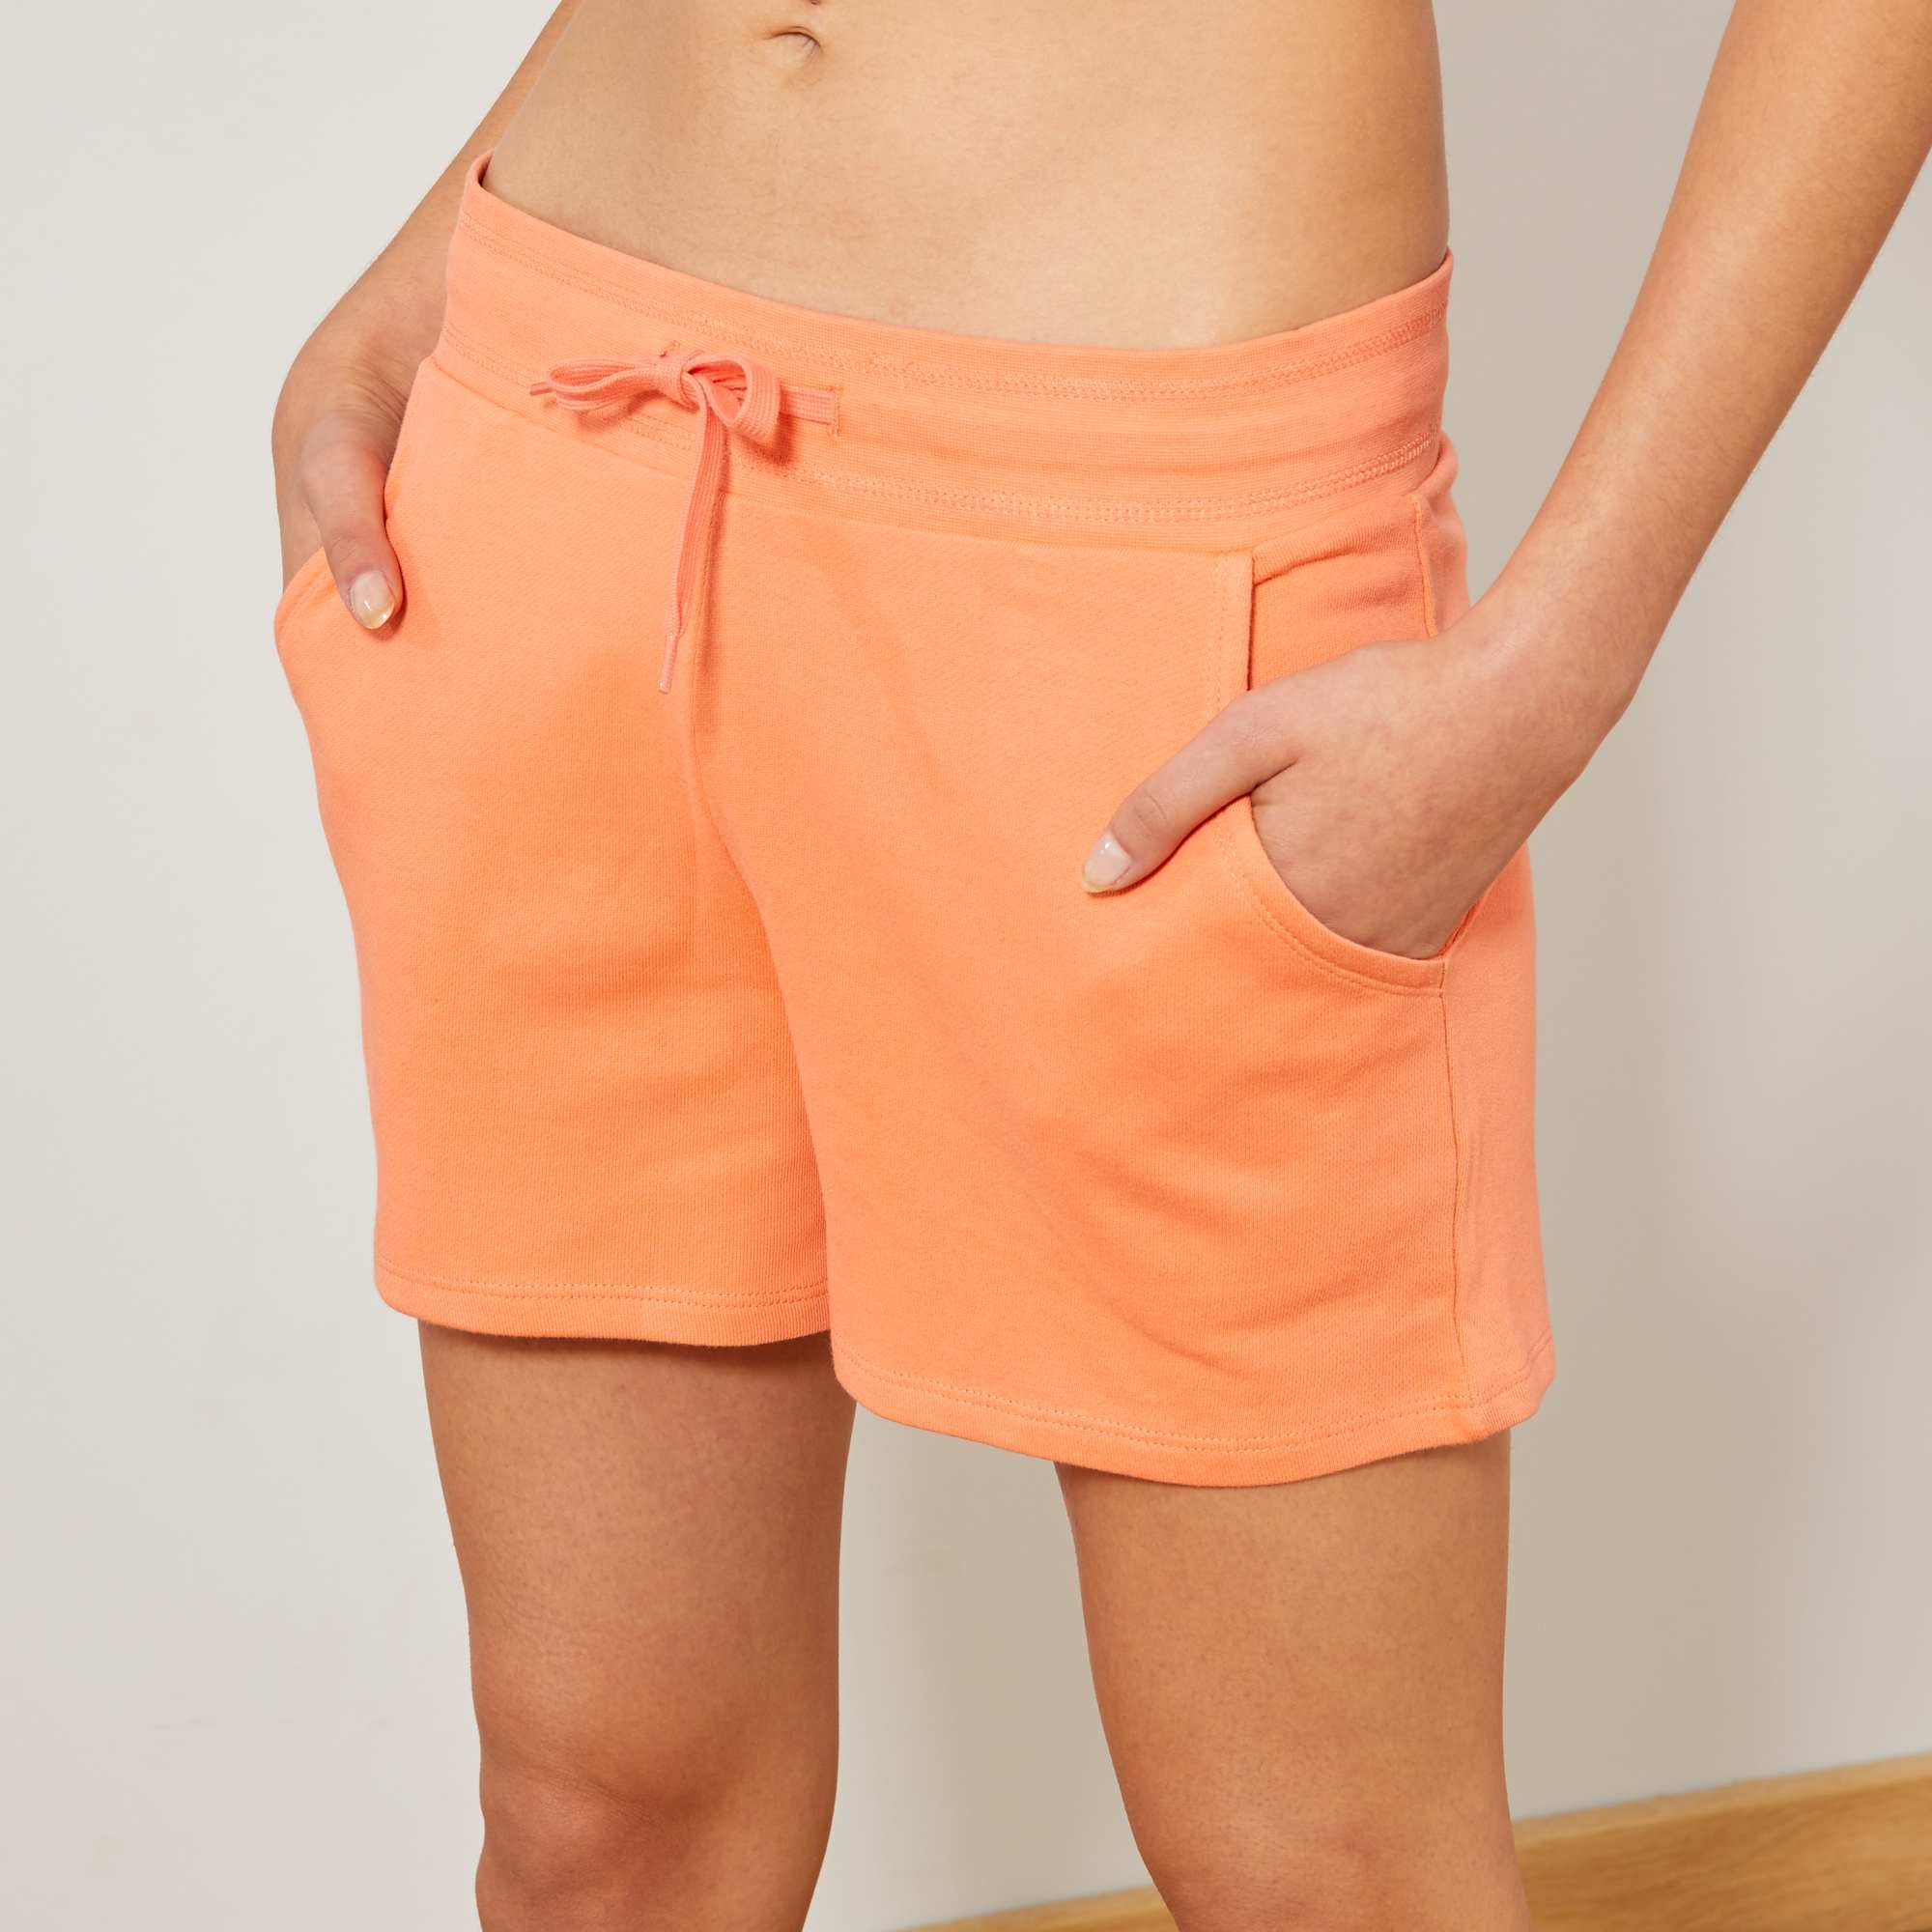 Short de sport en molleton Femme - orange